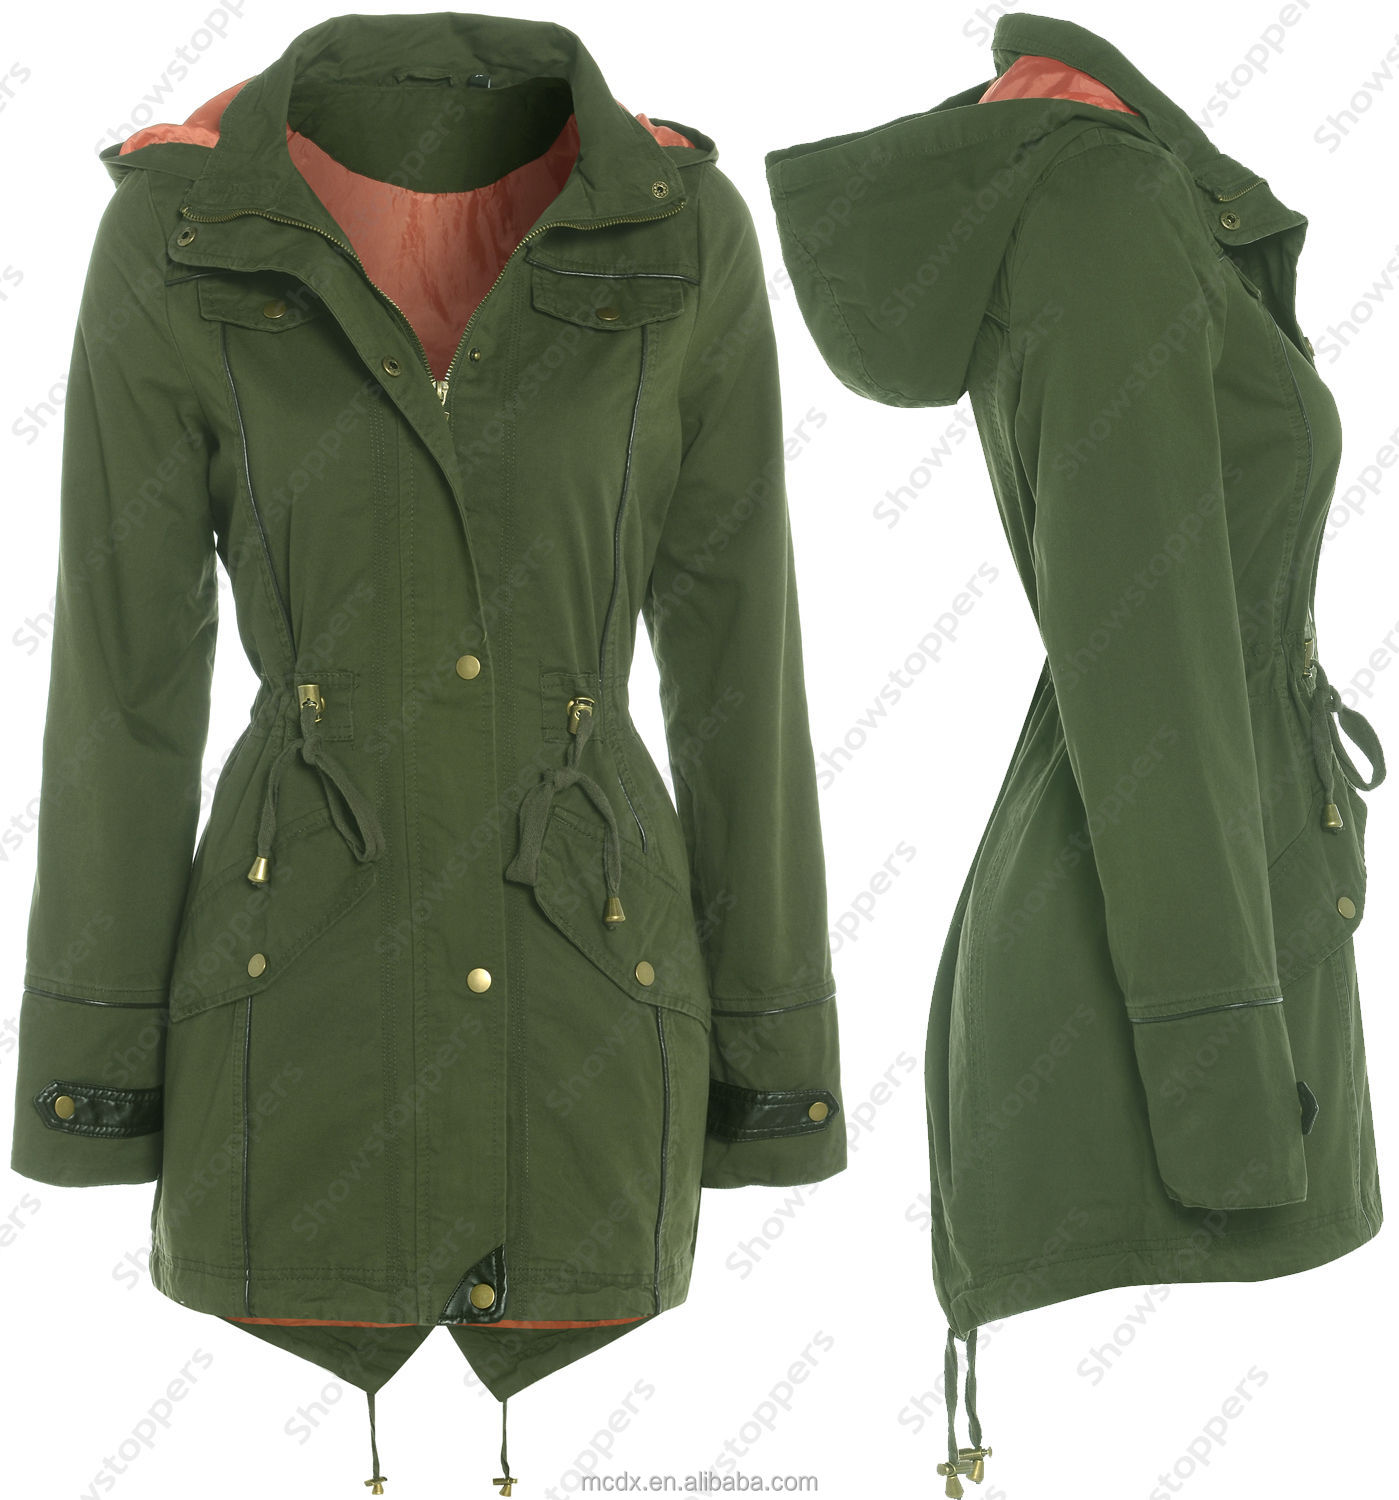 New Ladies Jacket Coat Women's Jacket Hood Pattern Windcheater ...